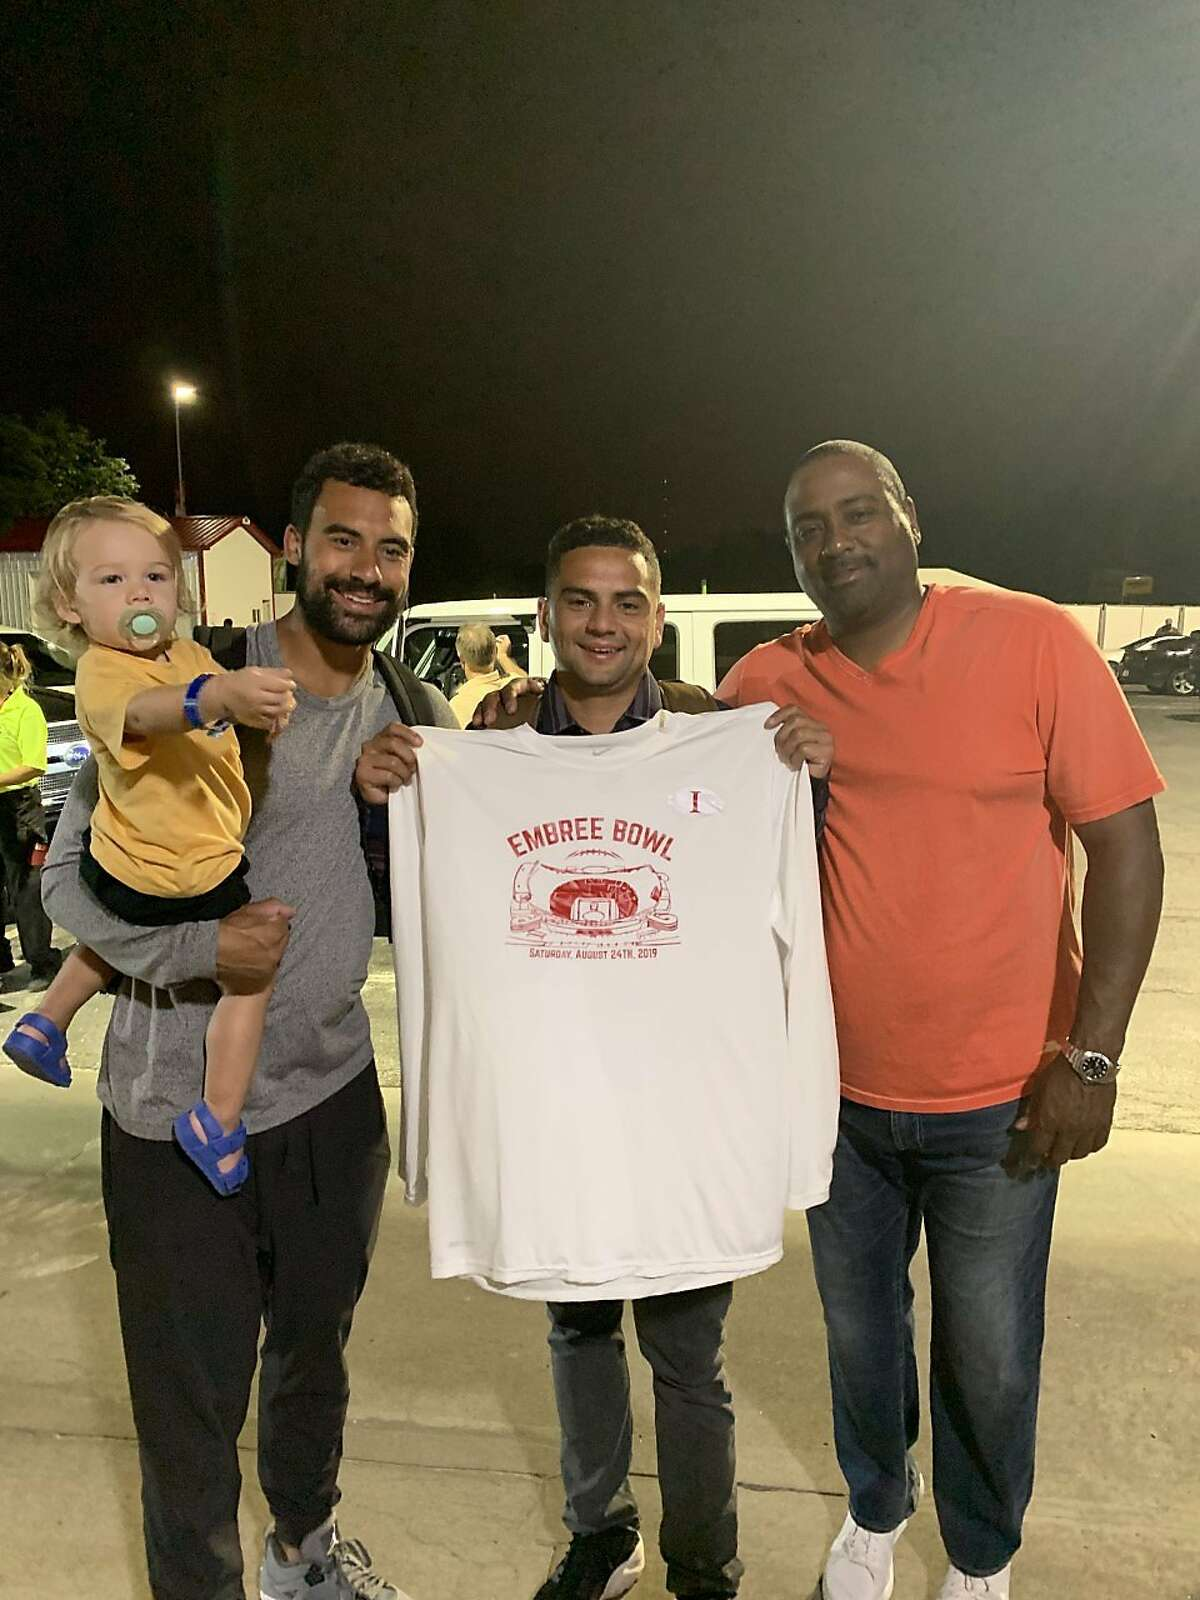 (From left to right) Taylor Embree, Connor Embree and Jon Embree after the 49ers' preseason win over the Chiefs in August in Kansas City. Taylor Embree is holding his 2-year-old son, Grayson.